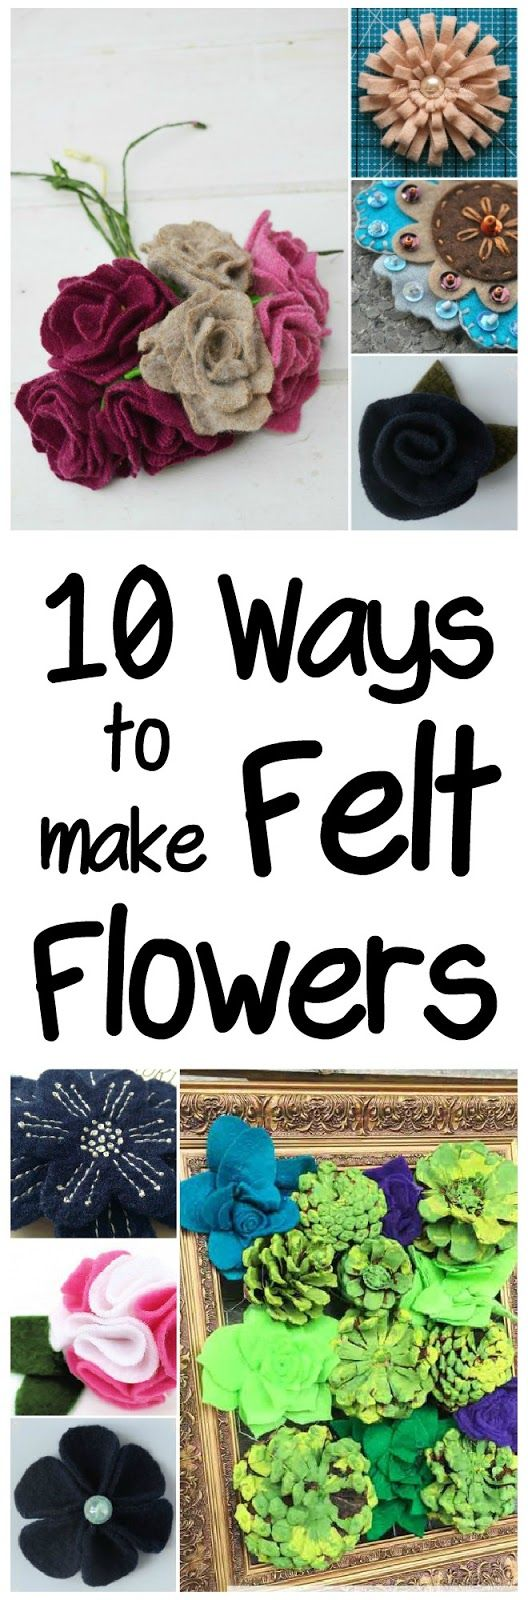 10 ways to make Felt flowers | felt | recycle | repurpose | upcycle